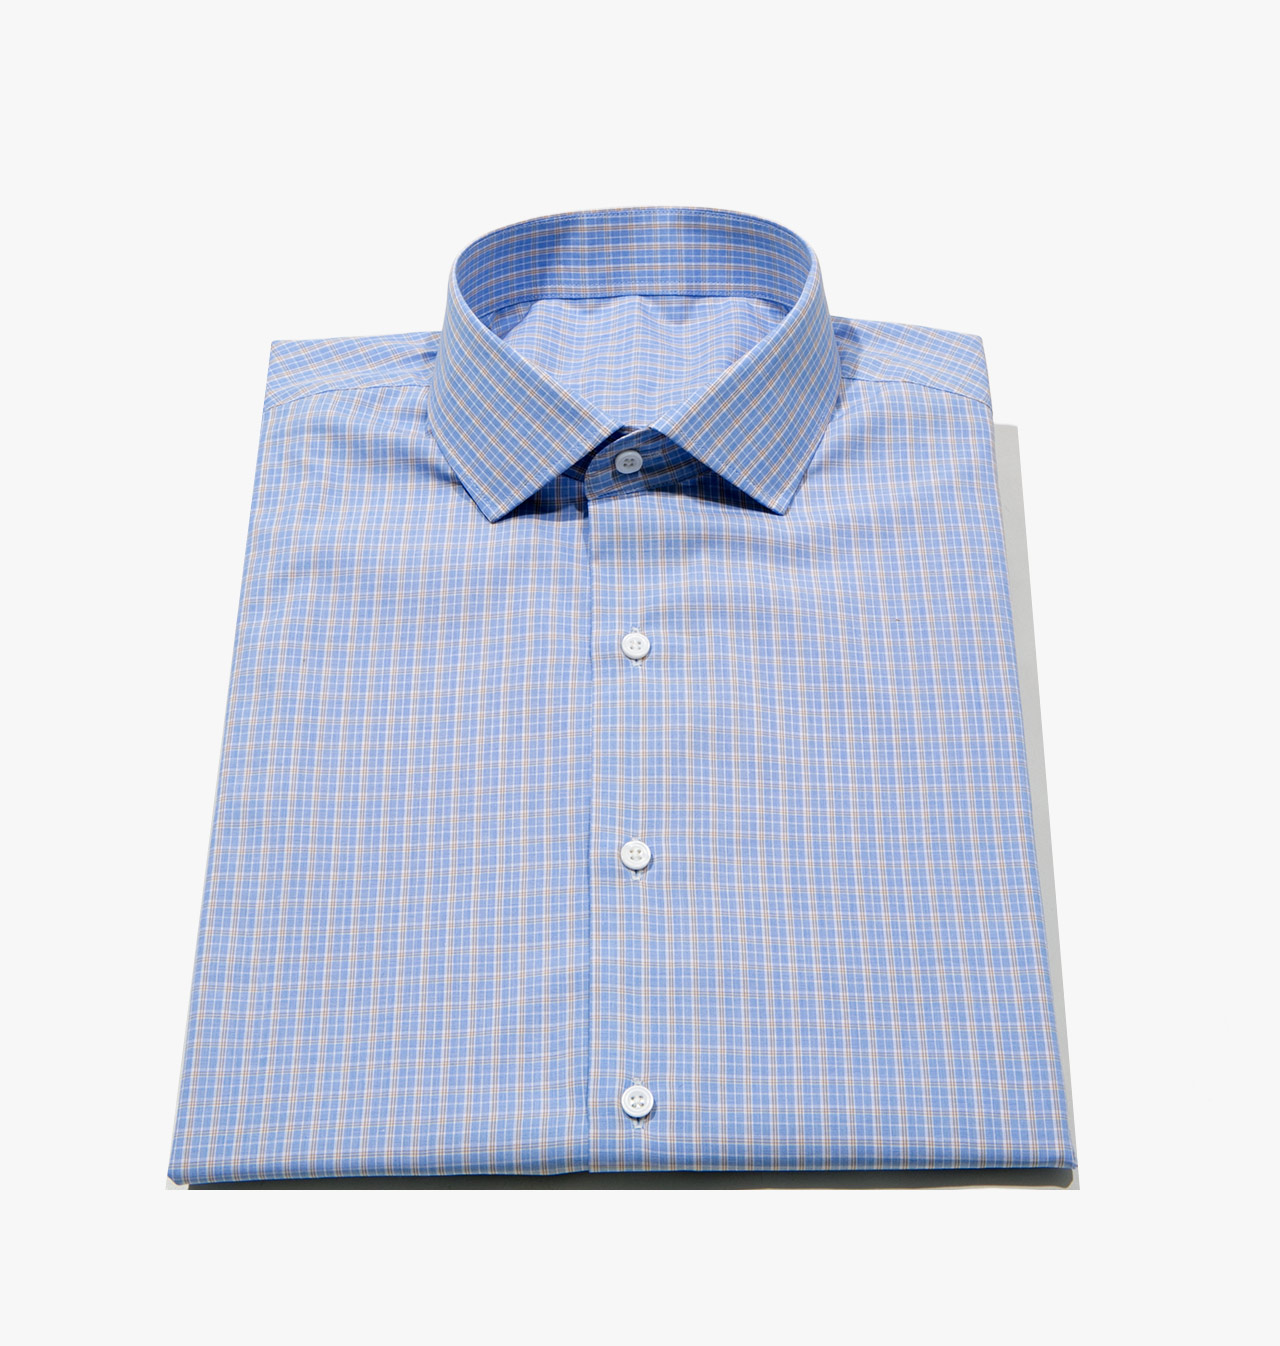 Shirts transitional blue yellow tattersall 1311 formal for Blank label clothing